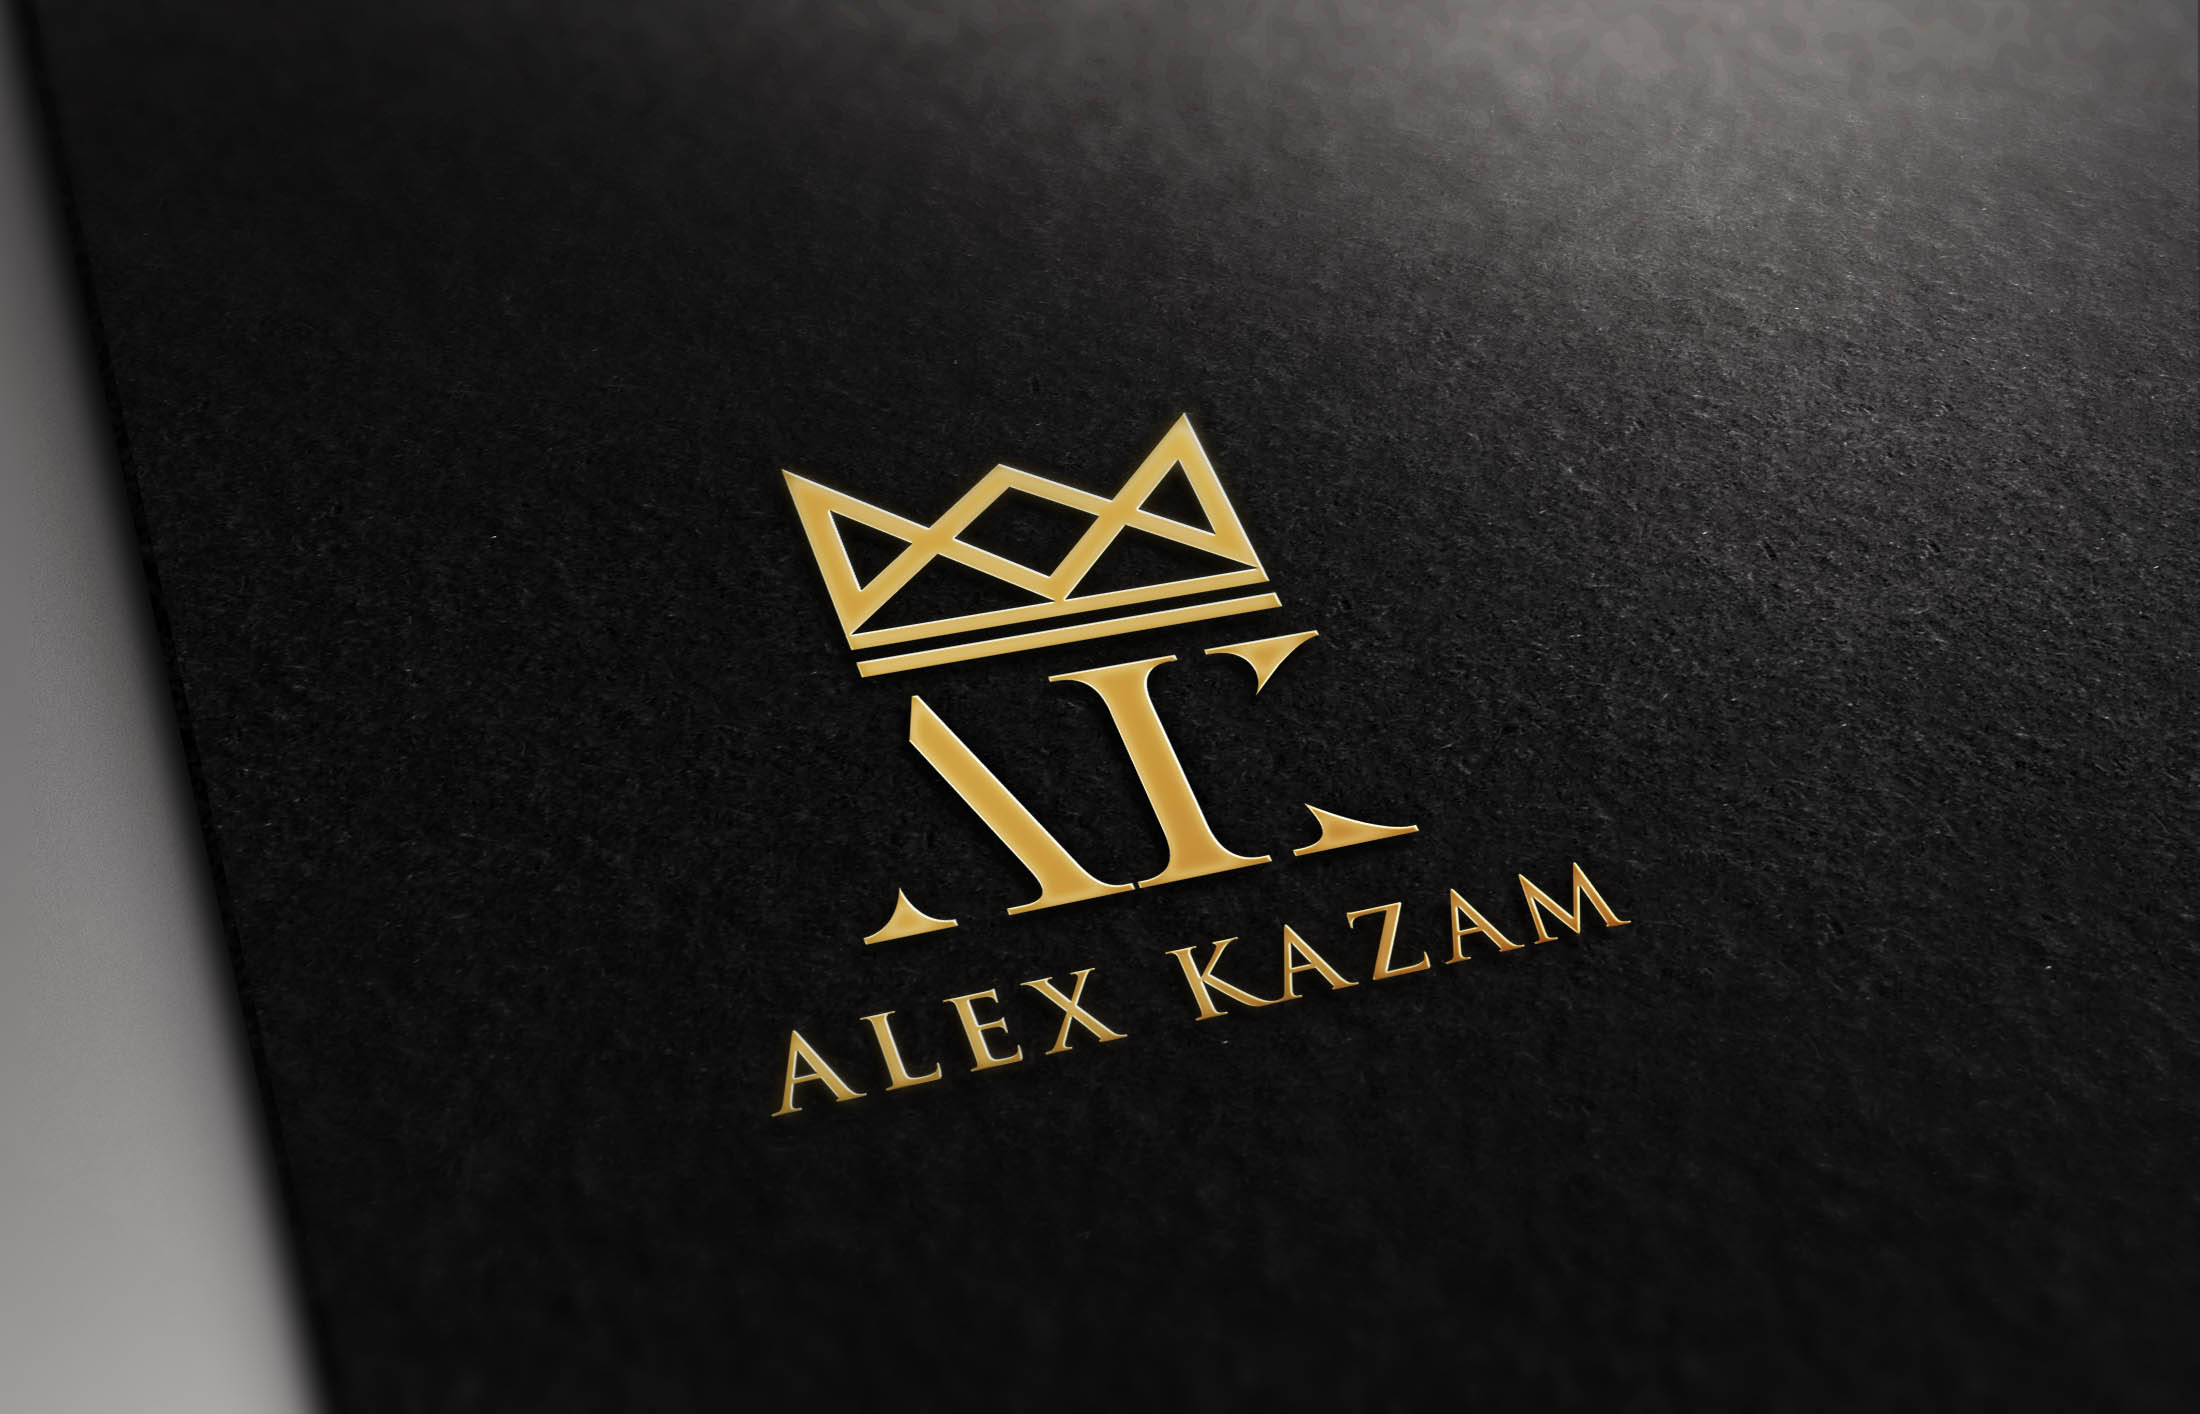 logo alex kazam mock artist graphic ak the mystery magic mentalist mindreader telepath crown